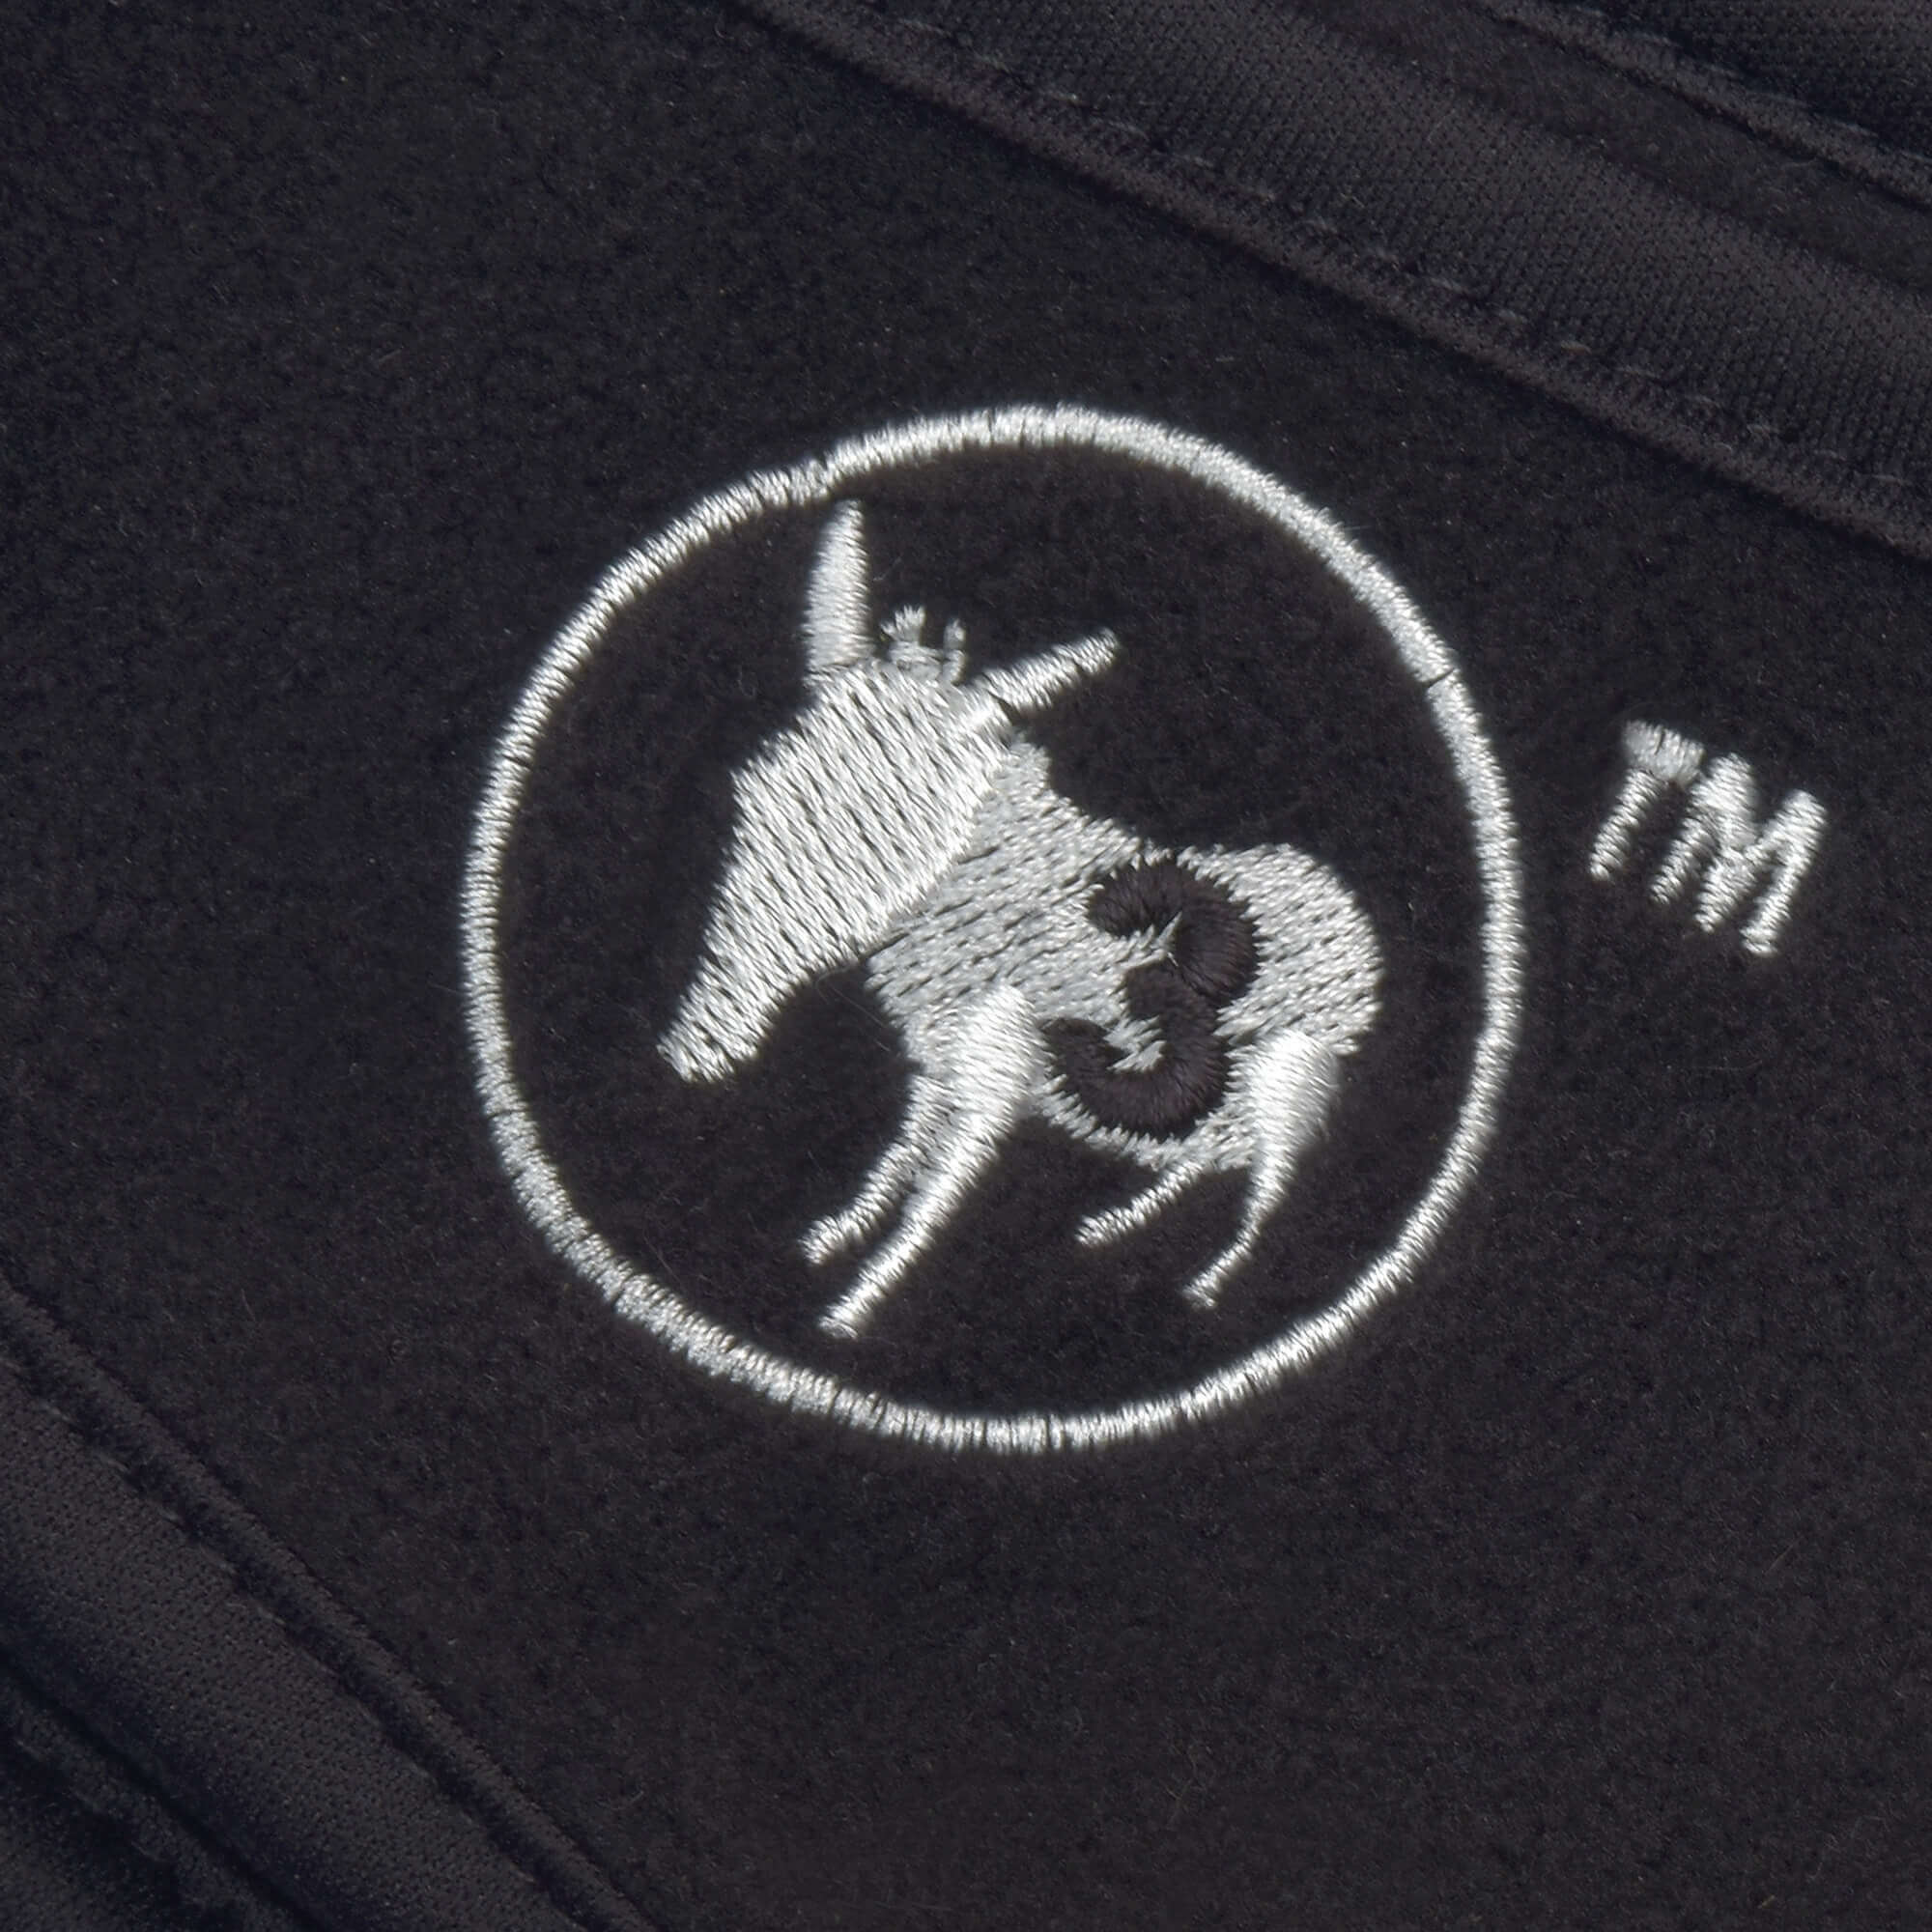 3-donkeys-logo-in-black-background-and-white-logo-of-3-donkeys